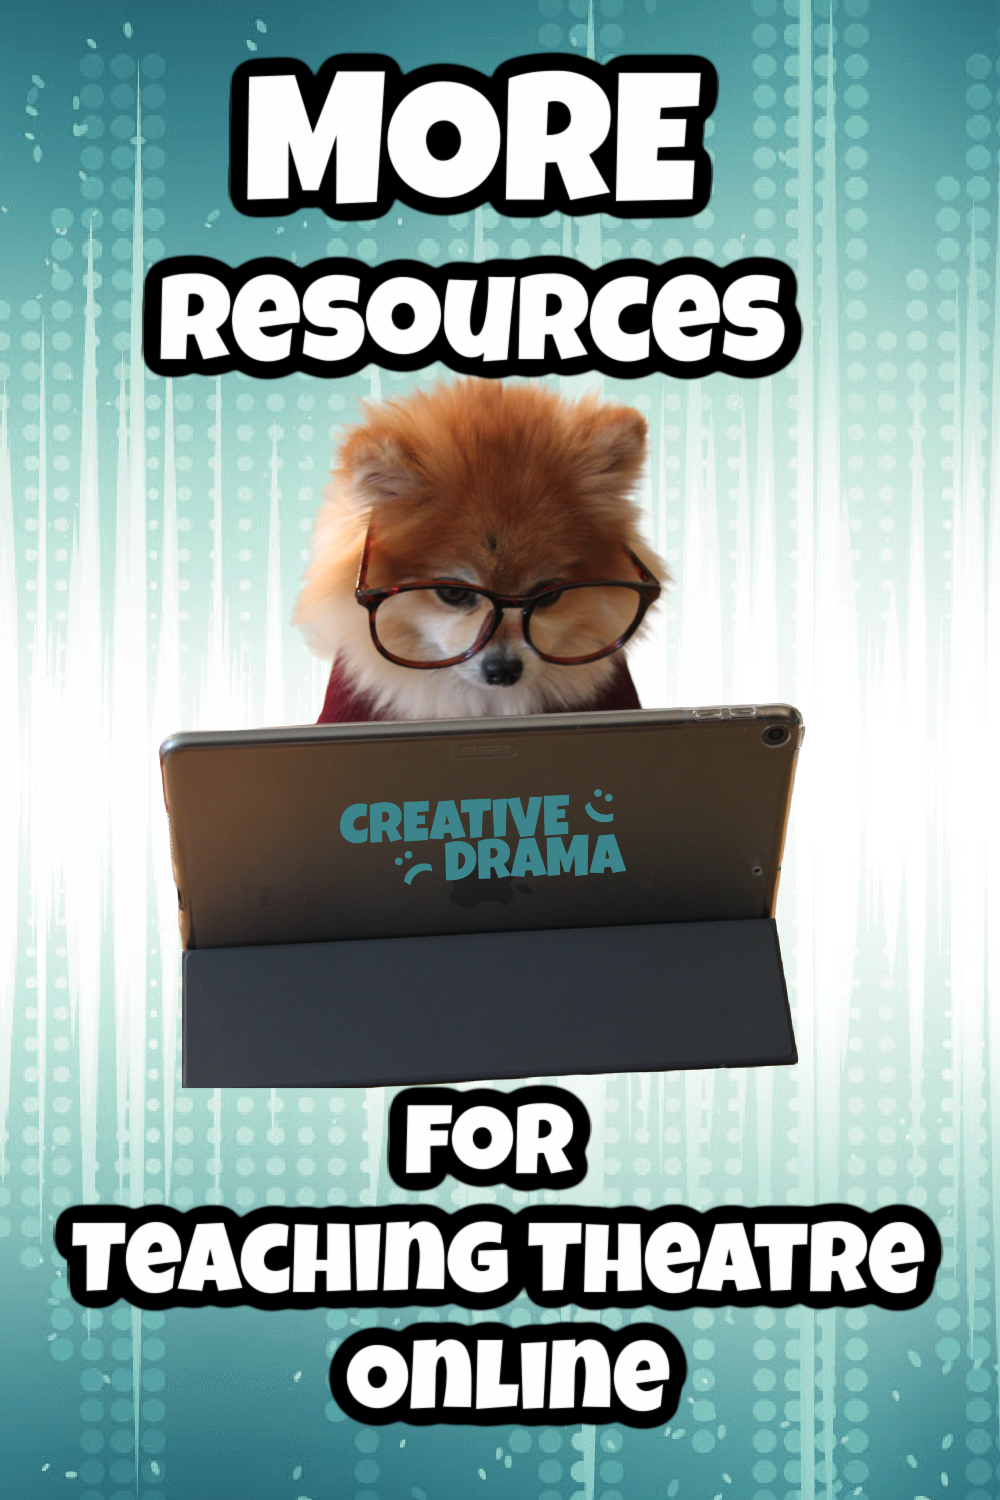 More Resources for Teaching Theatre Online Pin